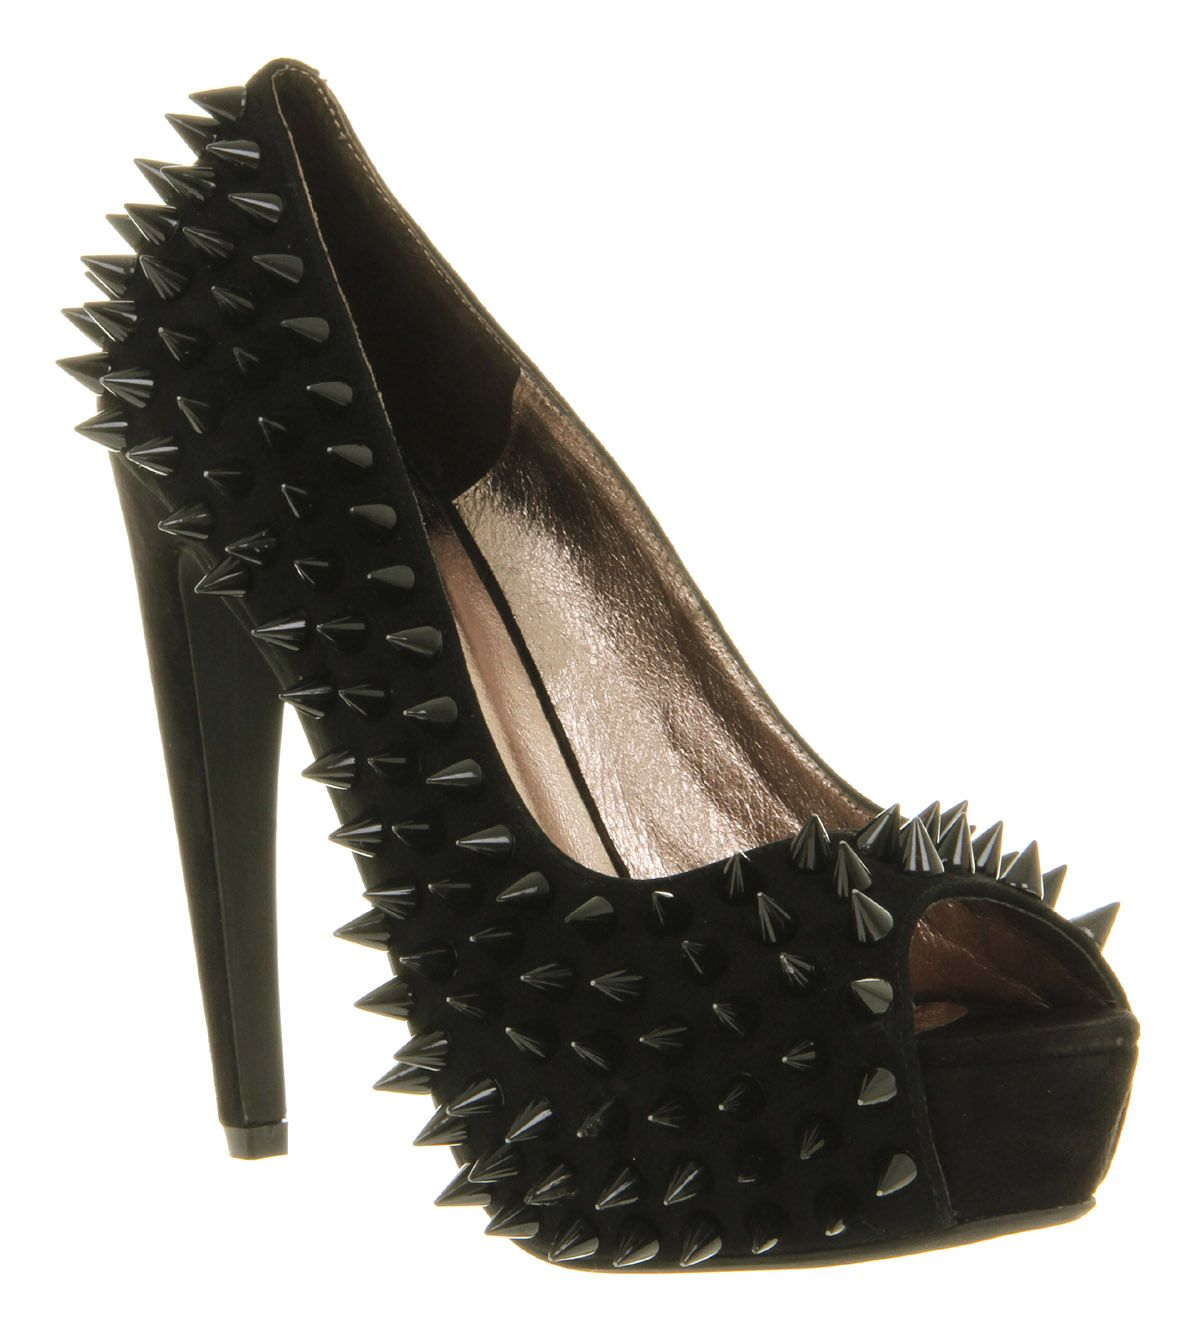 Jeffrey Campbell During Spike High Heel Black Suede - High Heels from OFFICE